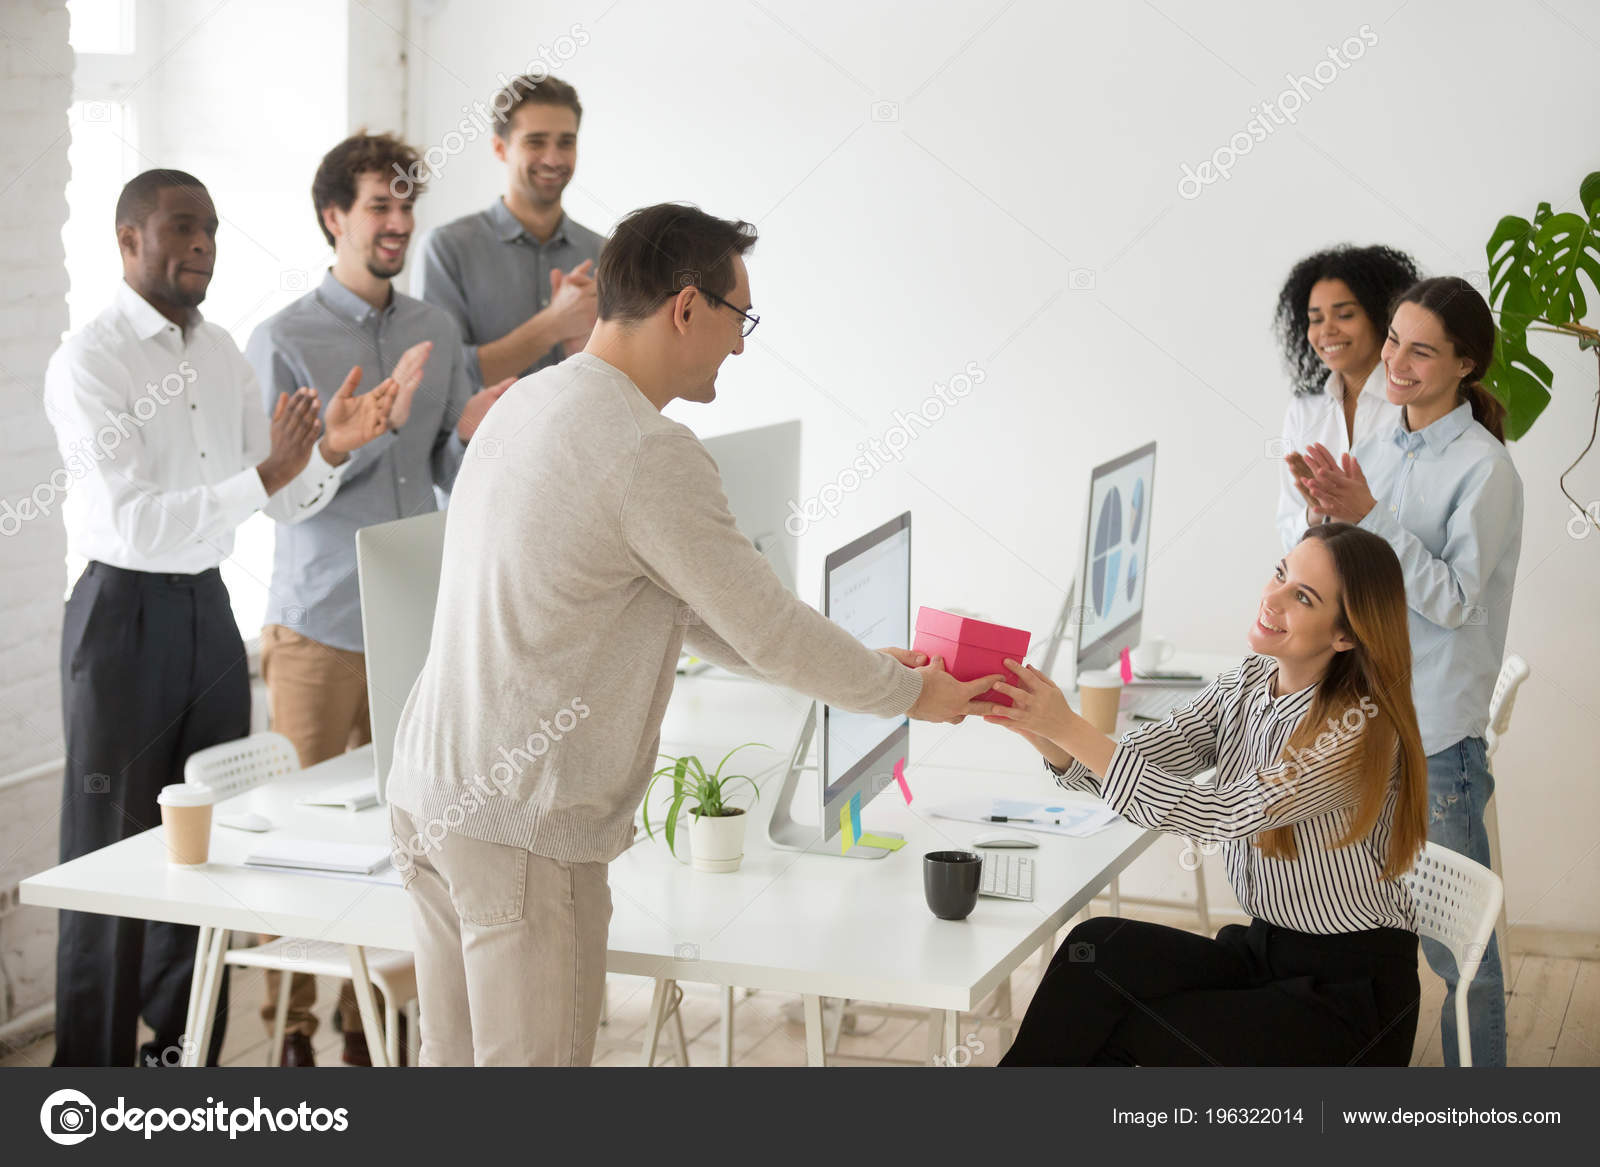 Friendly Team Congratulating Female Colleague With Birthday Gift Stock Photo